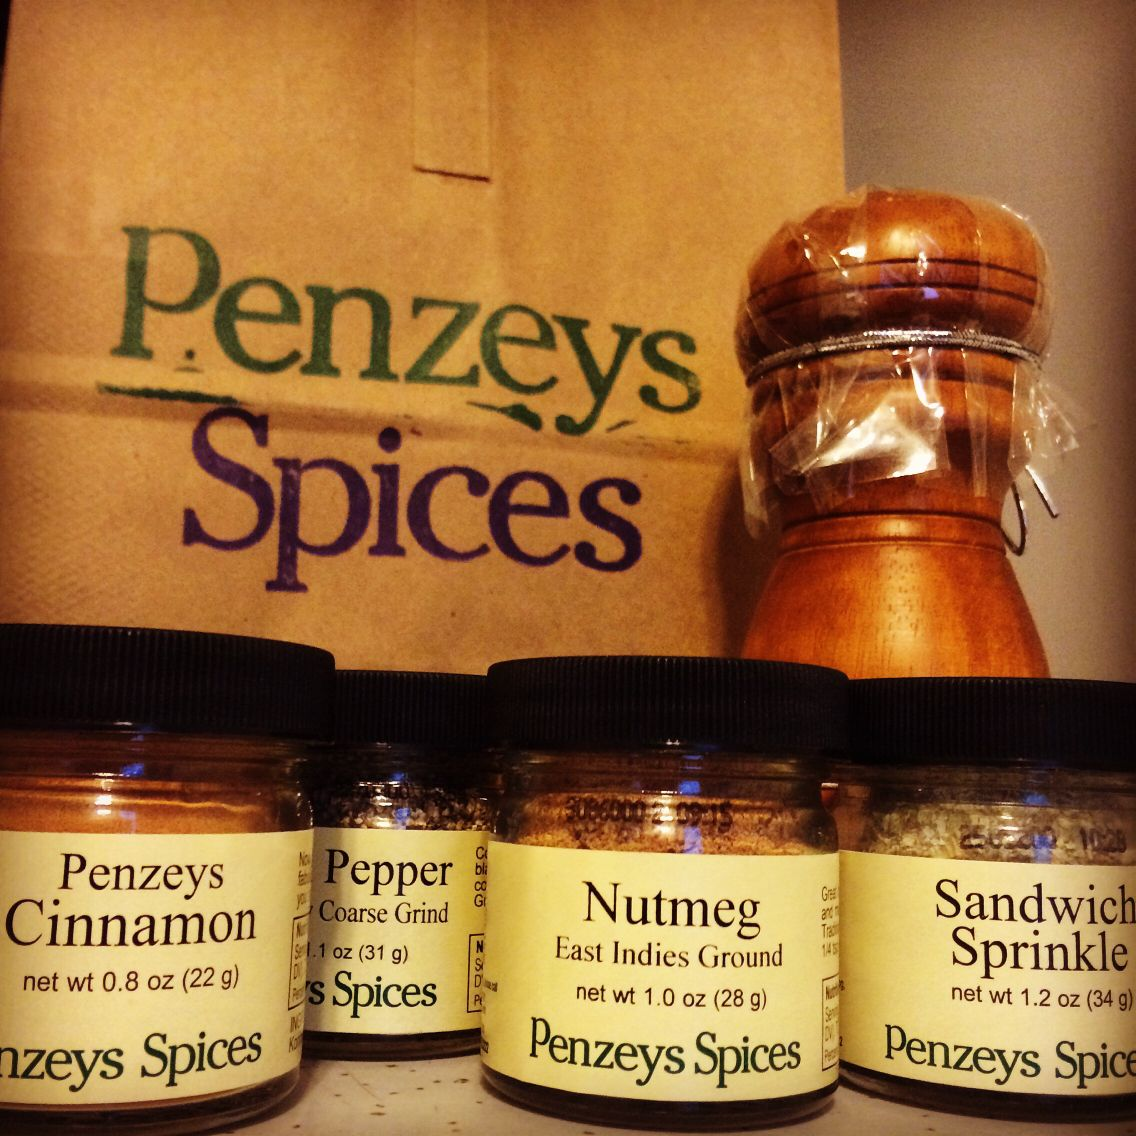 Penzeys Spices Maplewood Mo Penzeys Spices Maplewood Spices